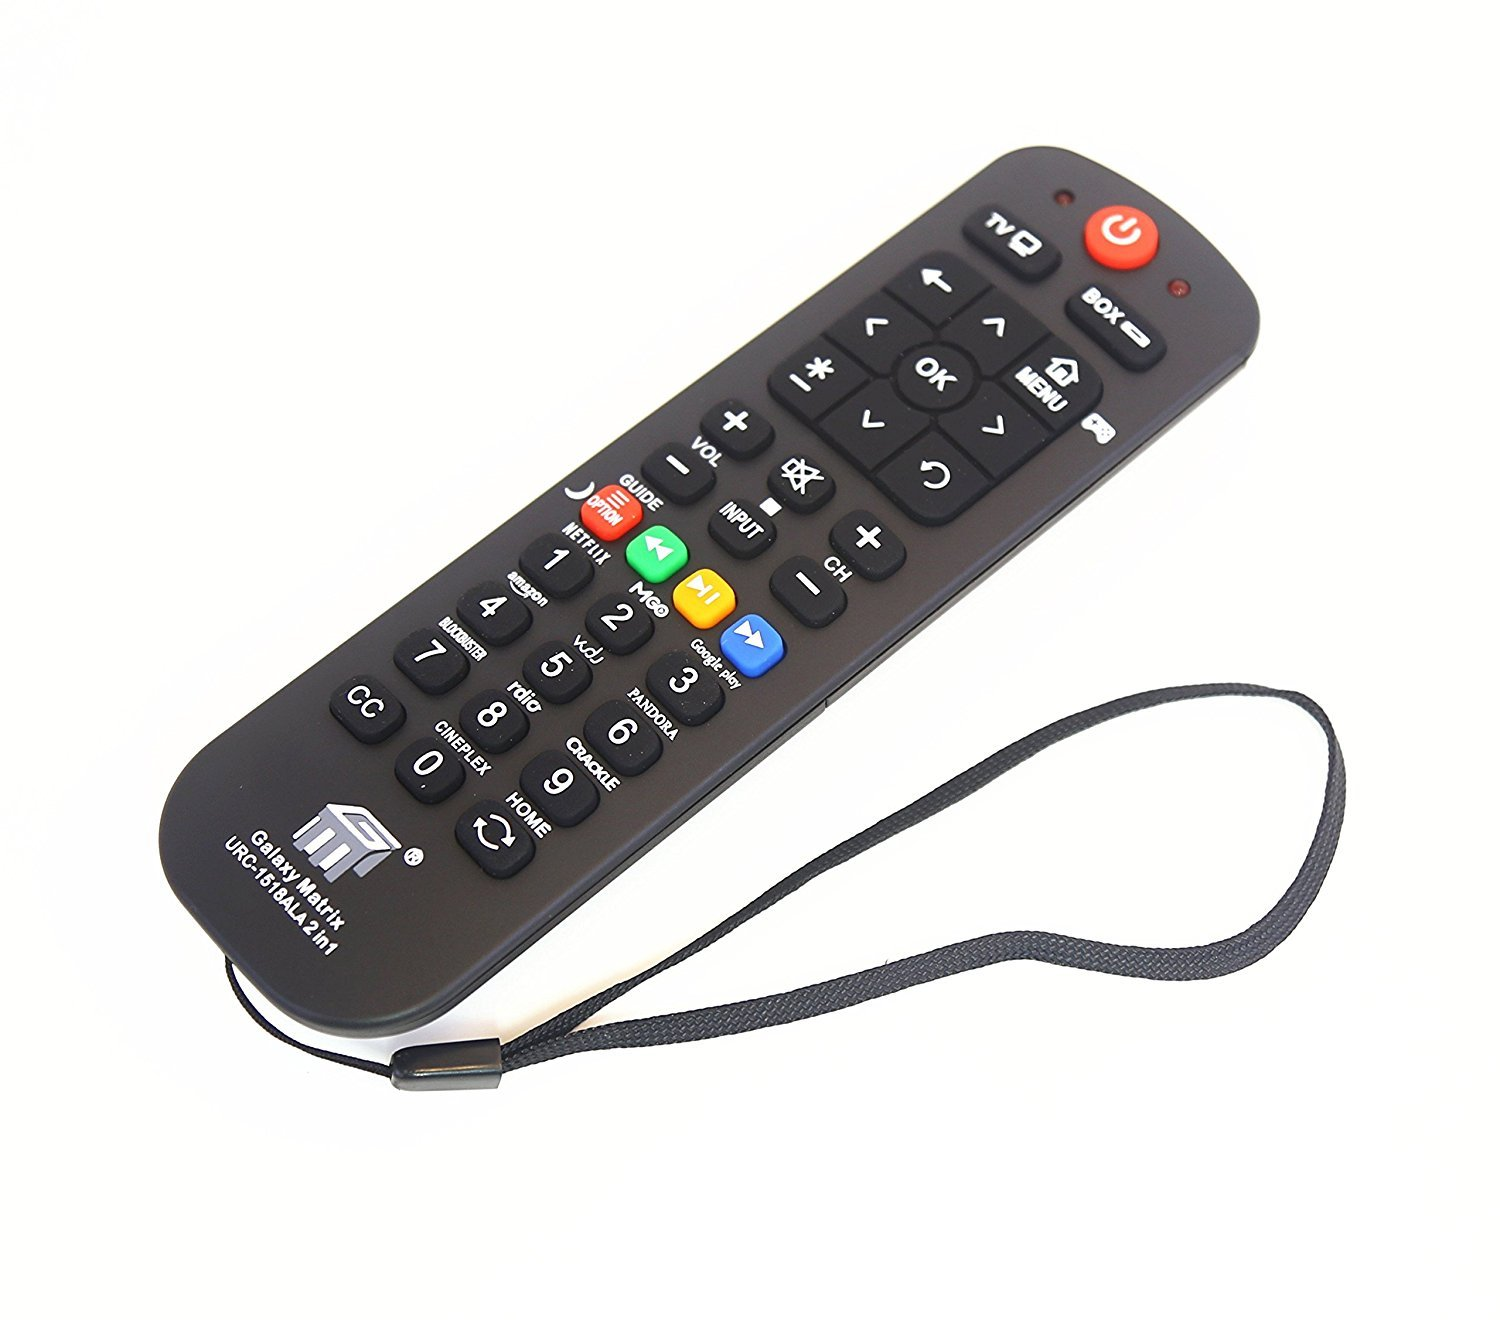 Brainly Universal Streaming Remote Work (2 in 1) for Main TV Main Streaming Box, Roku 1 2 3, Apple Tv, Vizio Smart TV,(URC1518) by Brainly (Image #3)